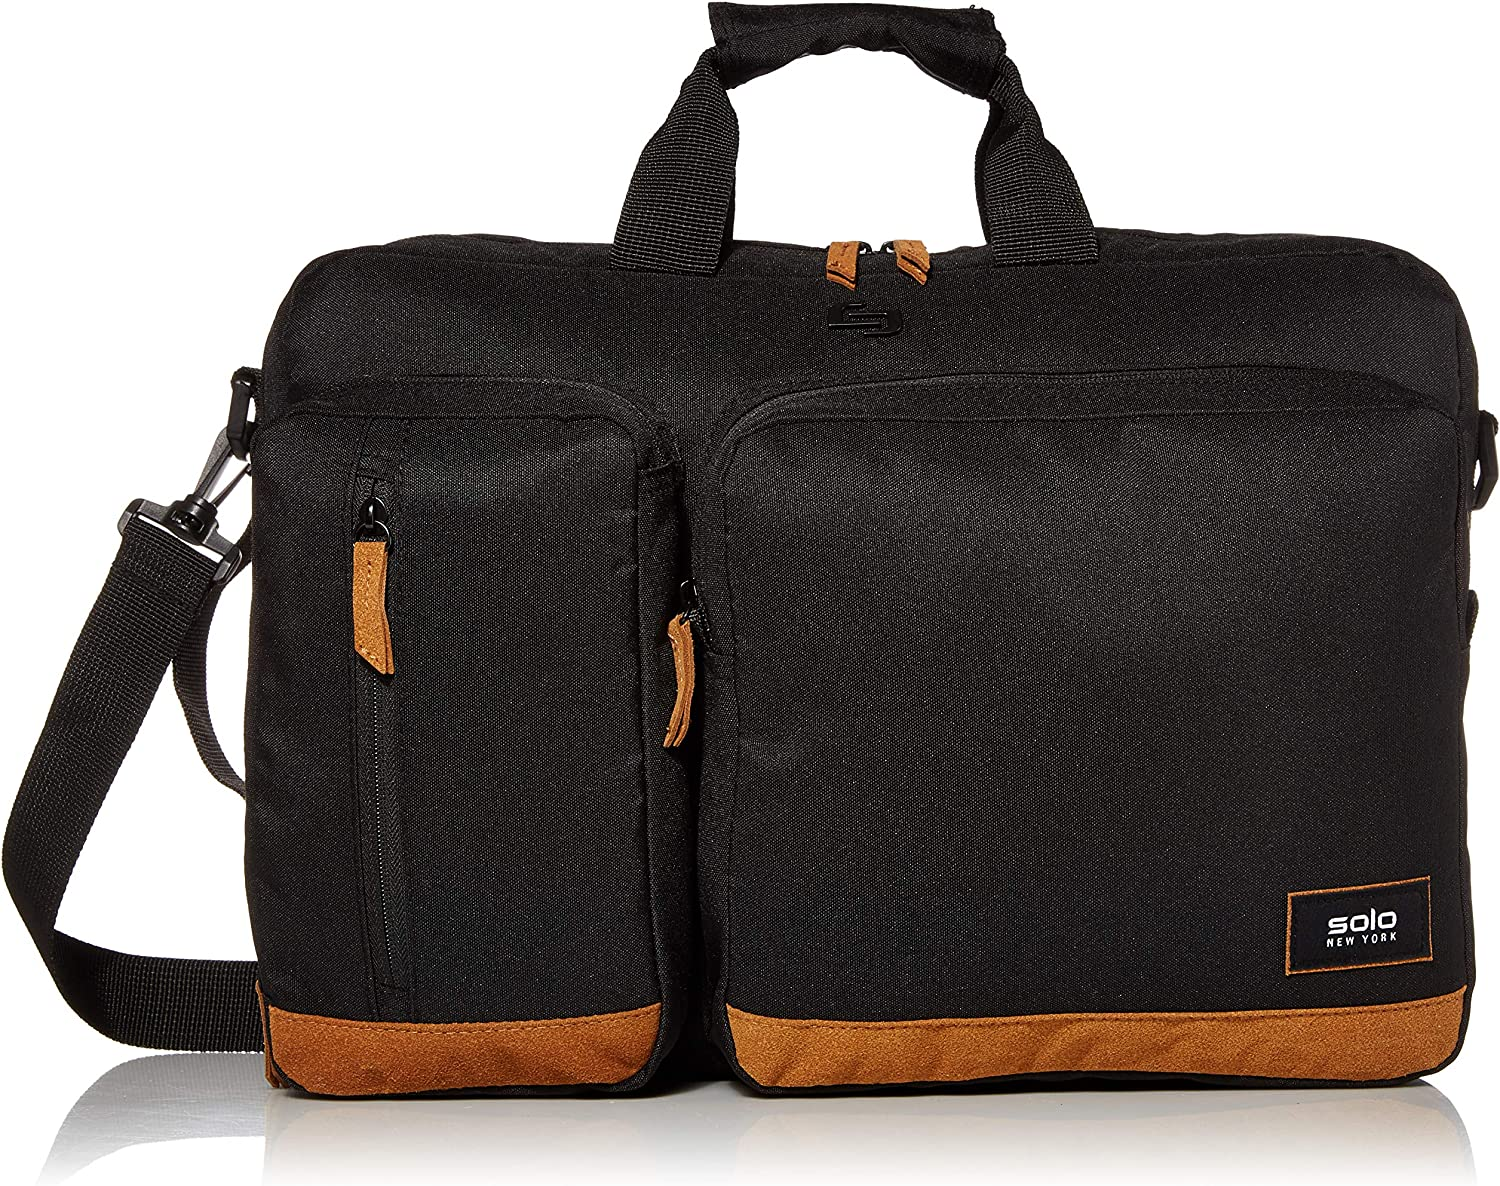 Solo New York Duane Hybrid Briefcase 15.6""